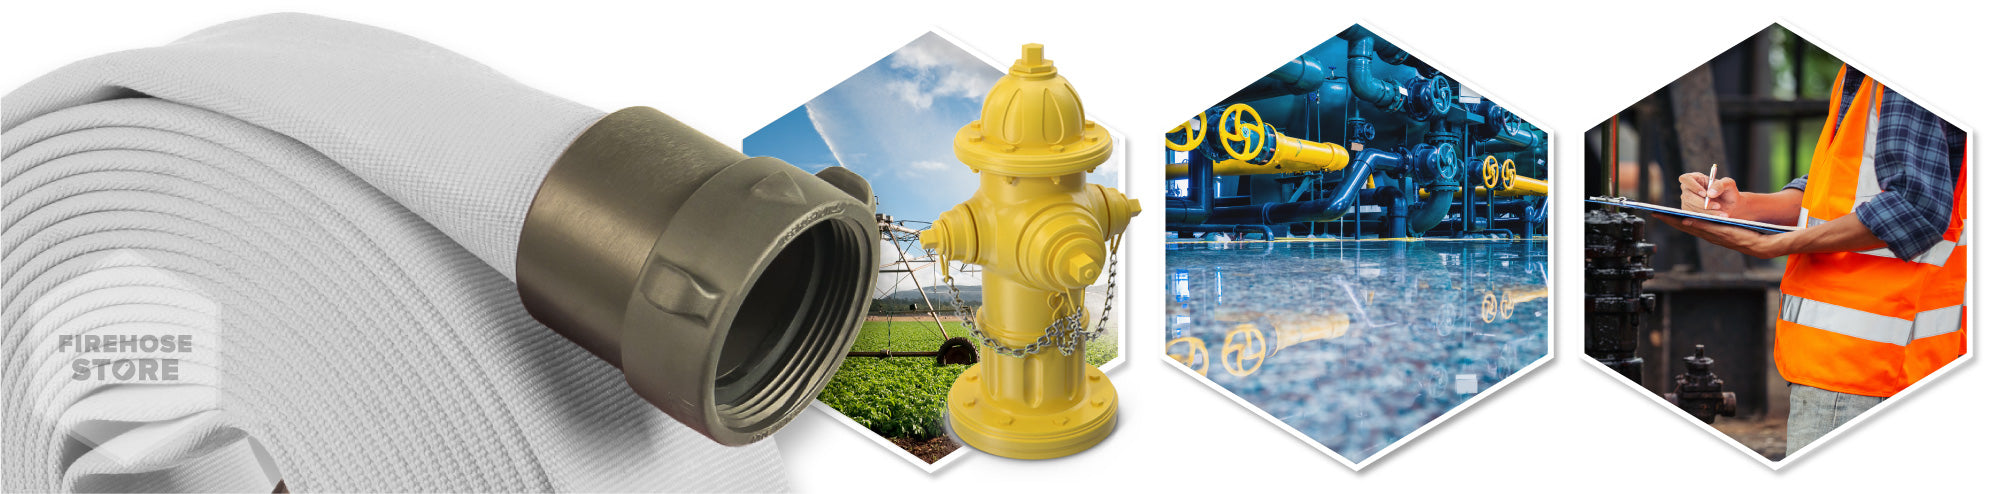 2-1-2 Inch x 100 Feet Fire Hydrant Hose Graphic Overview